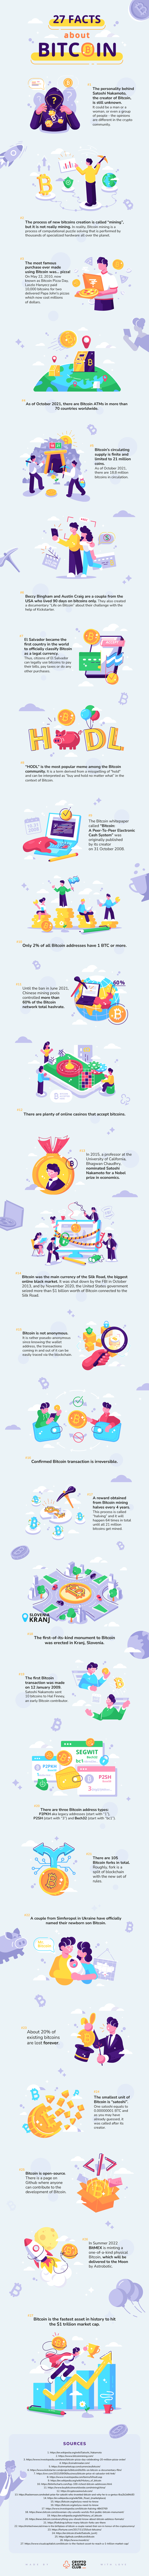 27 facts about Bitcoin infographic